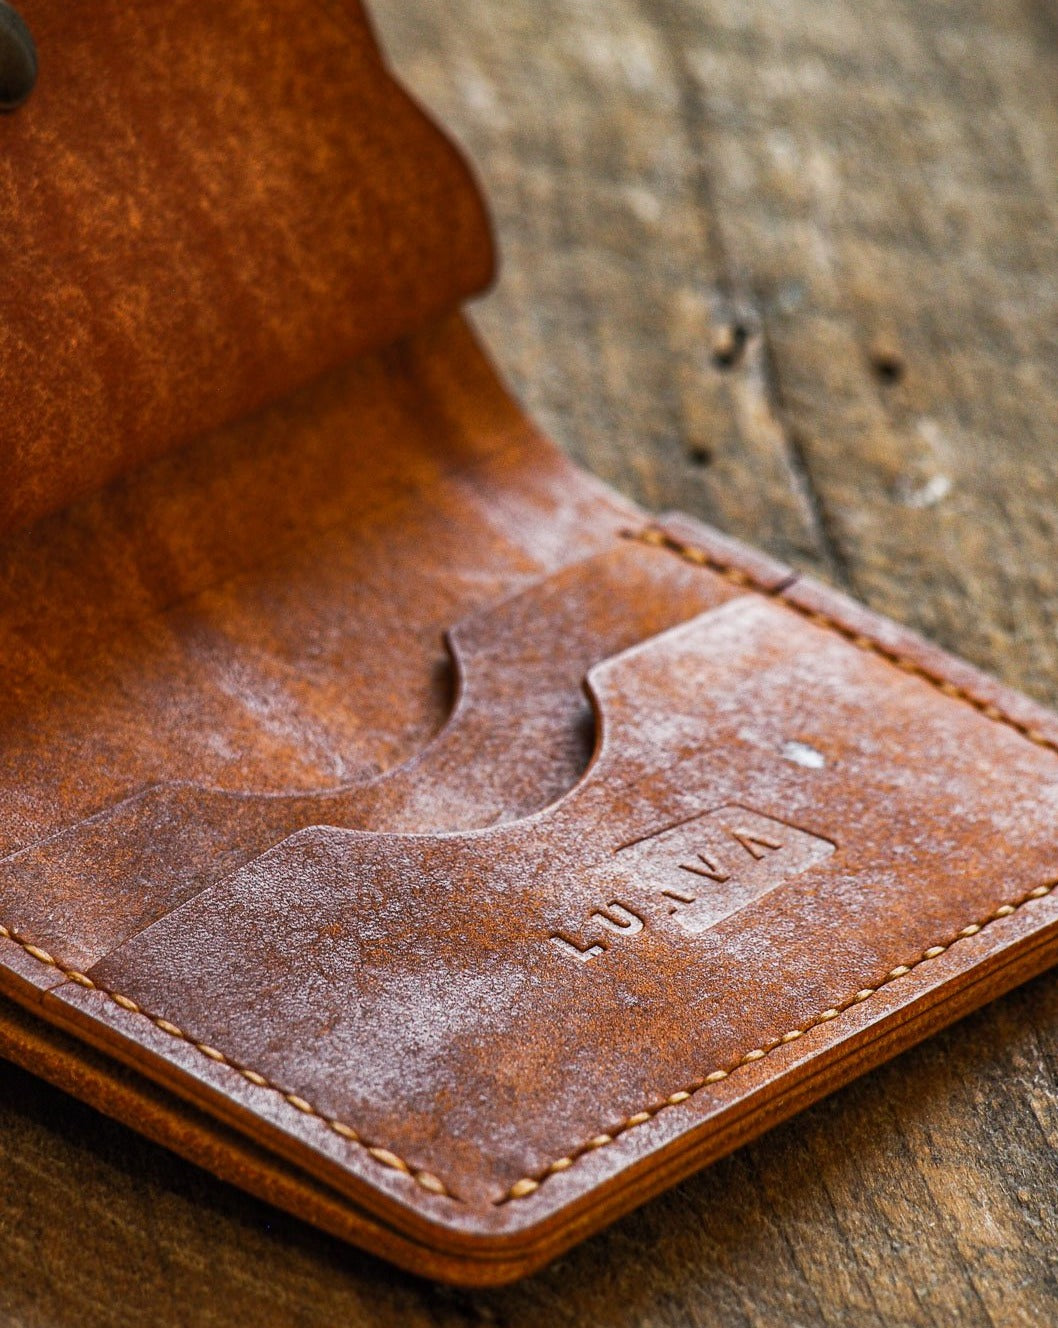 Luava handmade leather wallet KOLOSS pine card holder cardholder handcrafted pecos raw whiskey front open logo detail